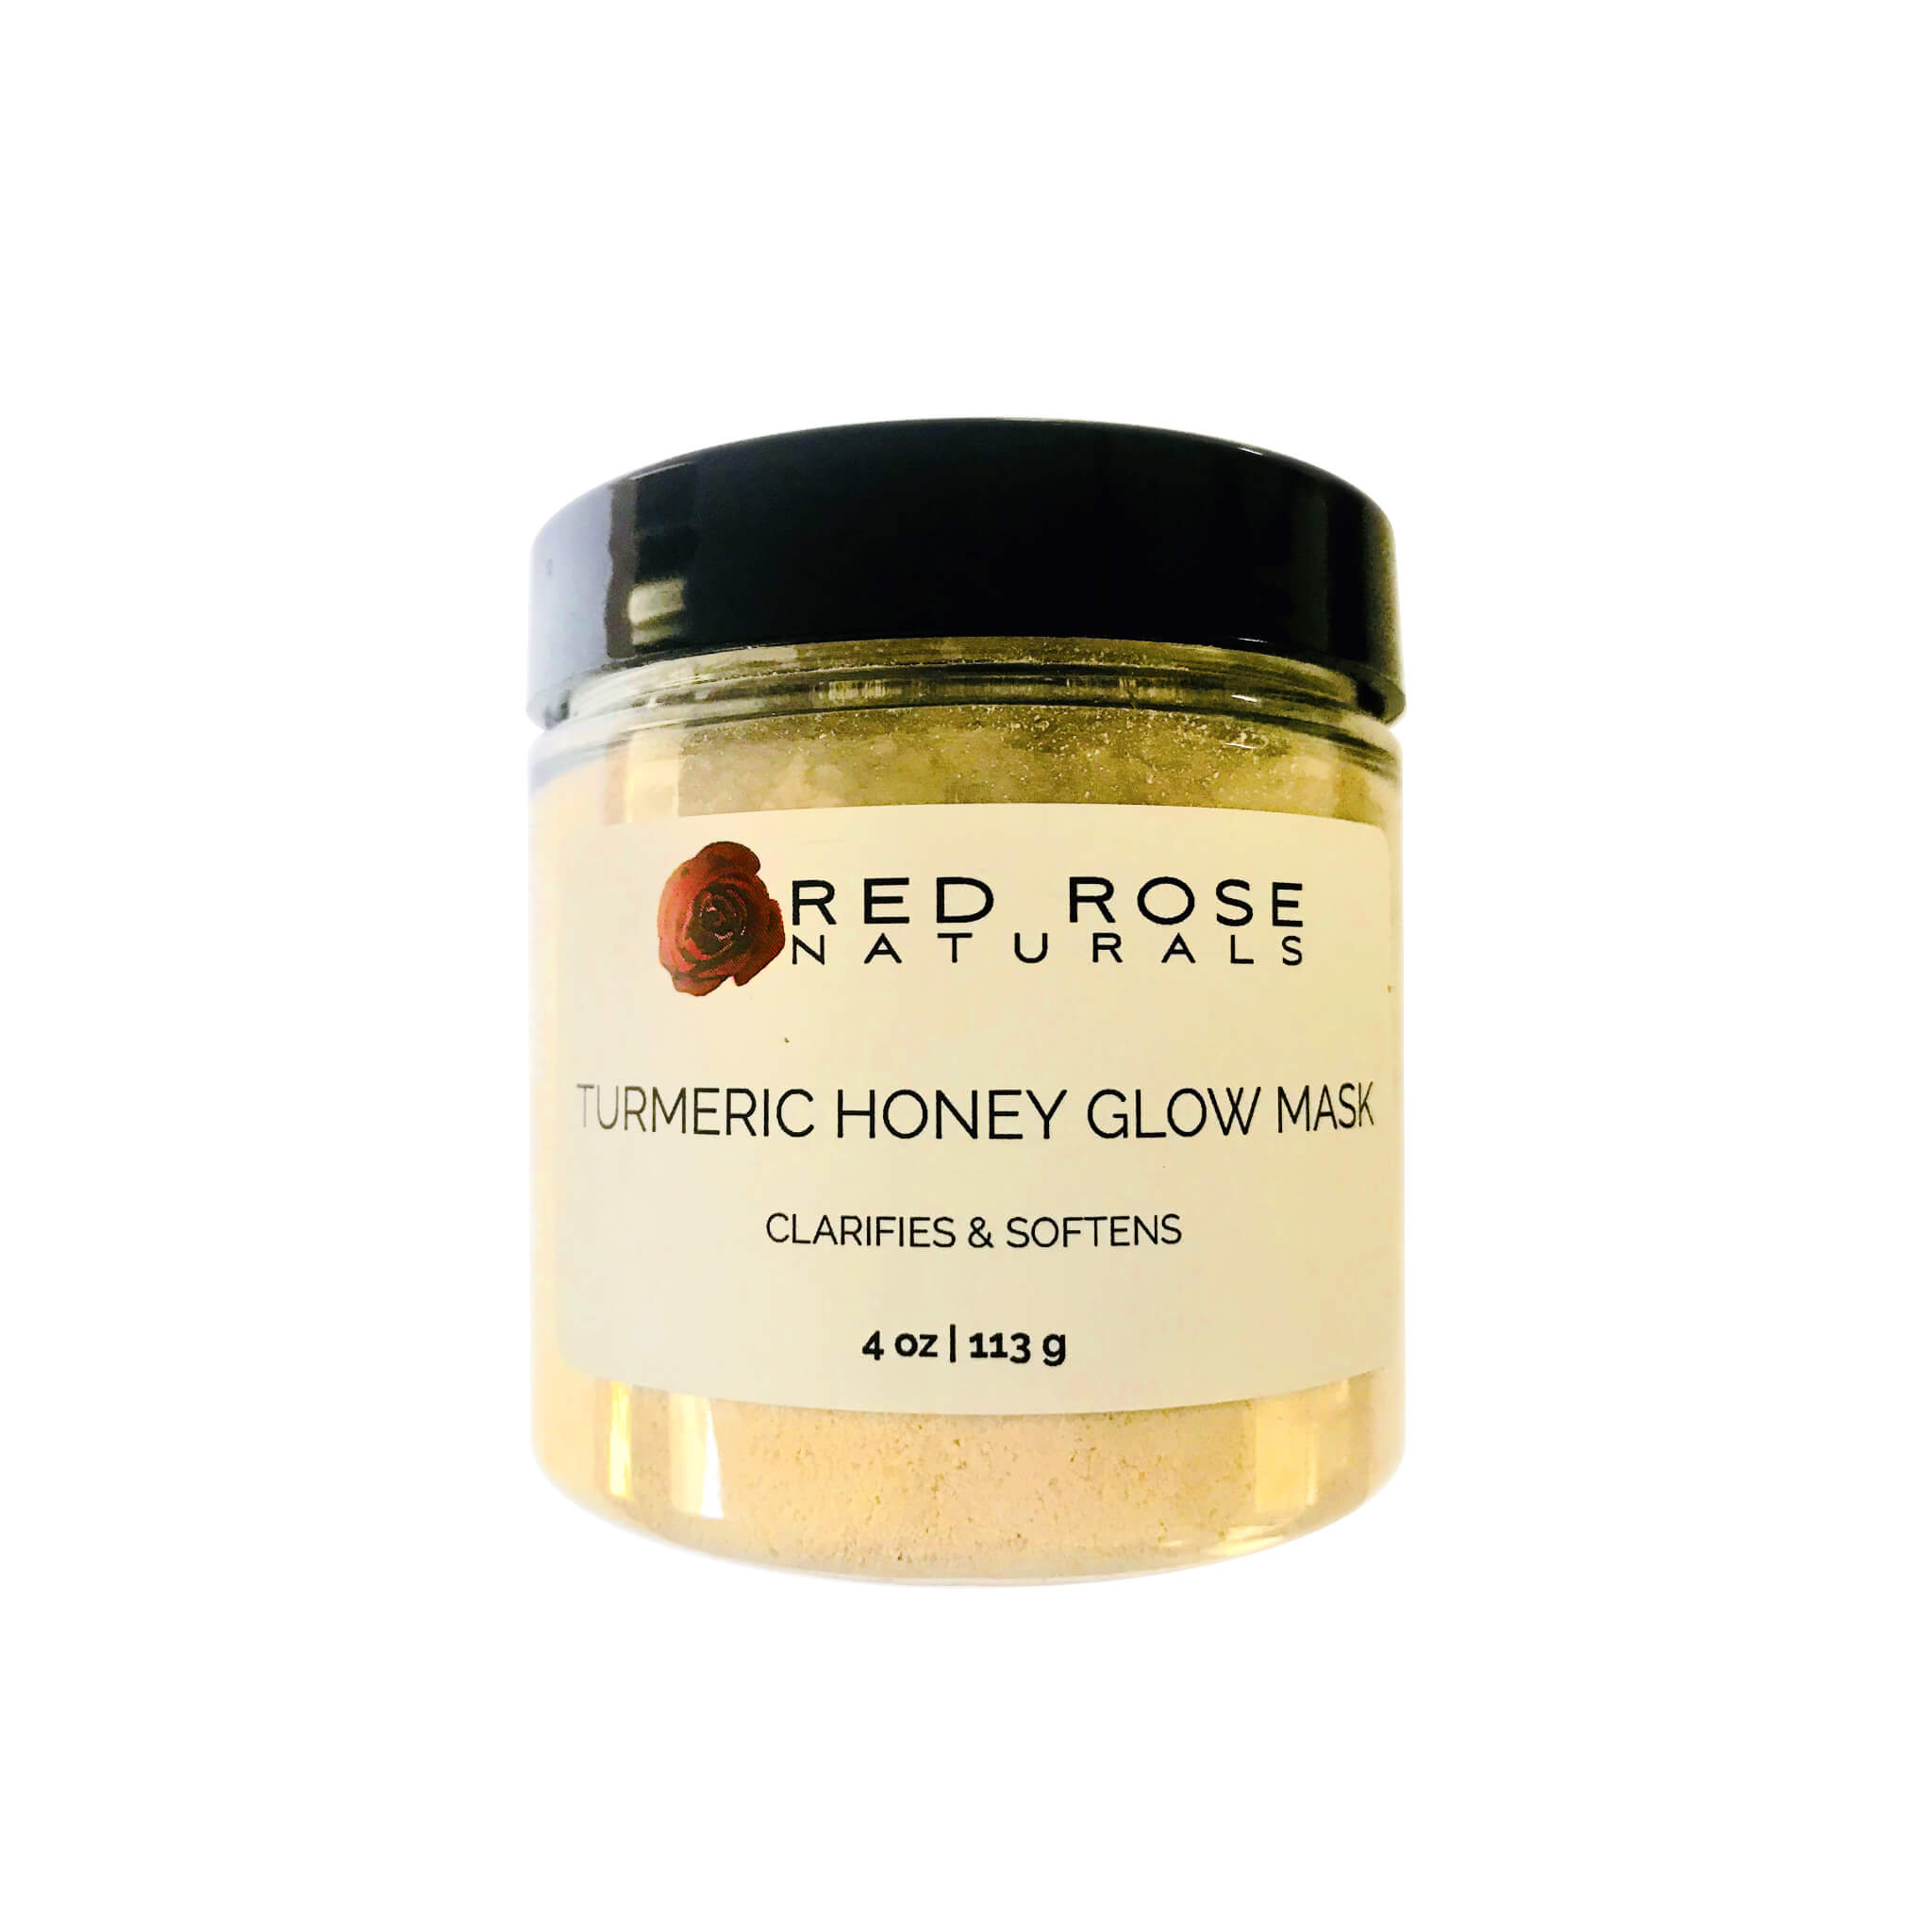 Red Rose Naturals - Turmeric Honey Glow Mask